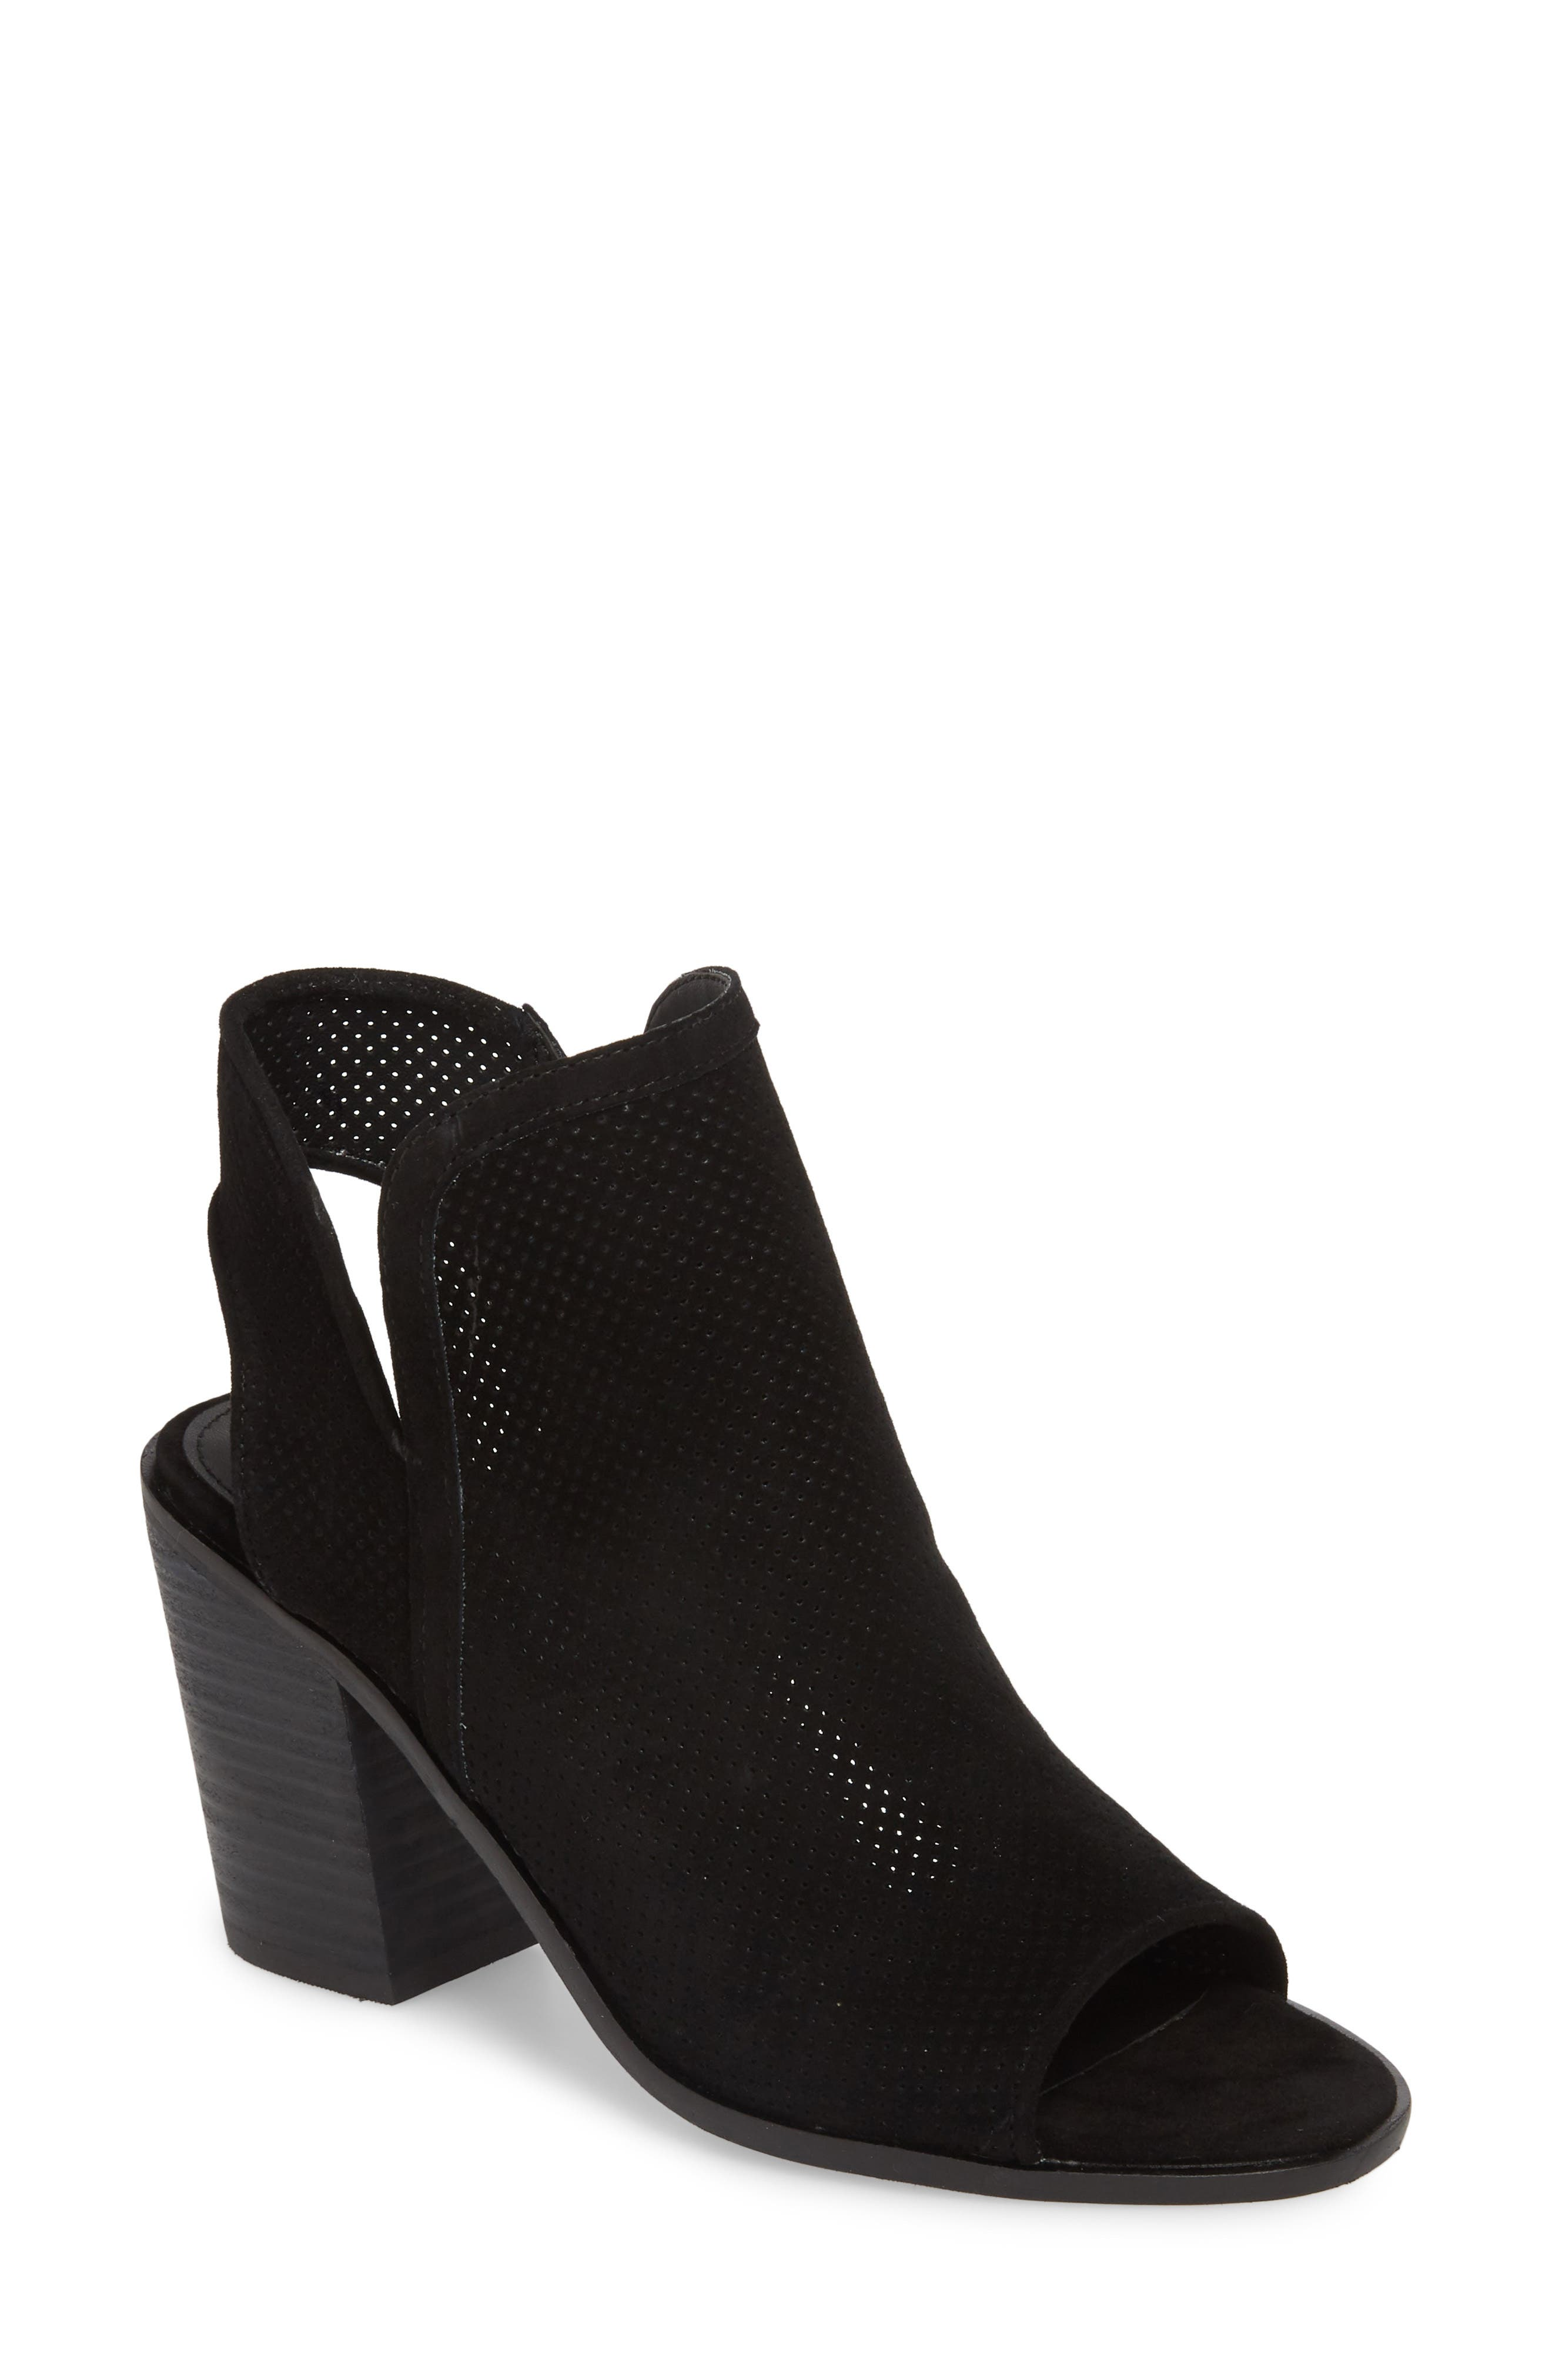 Maxine Perforated Bootie,                             Main thumbnail 1, color,                             006